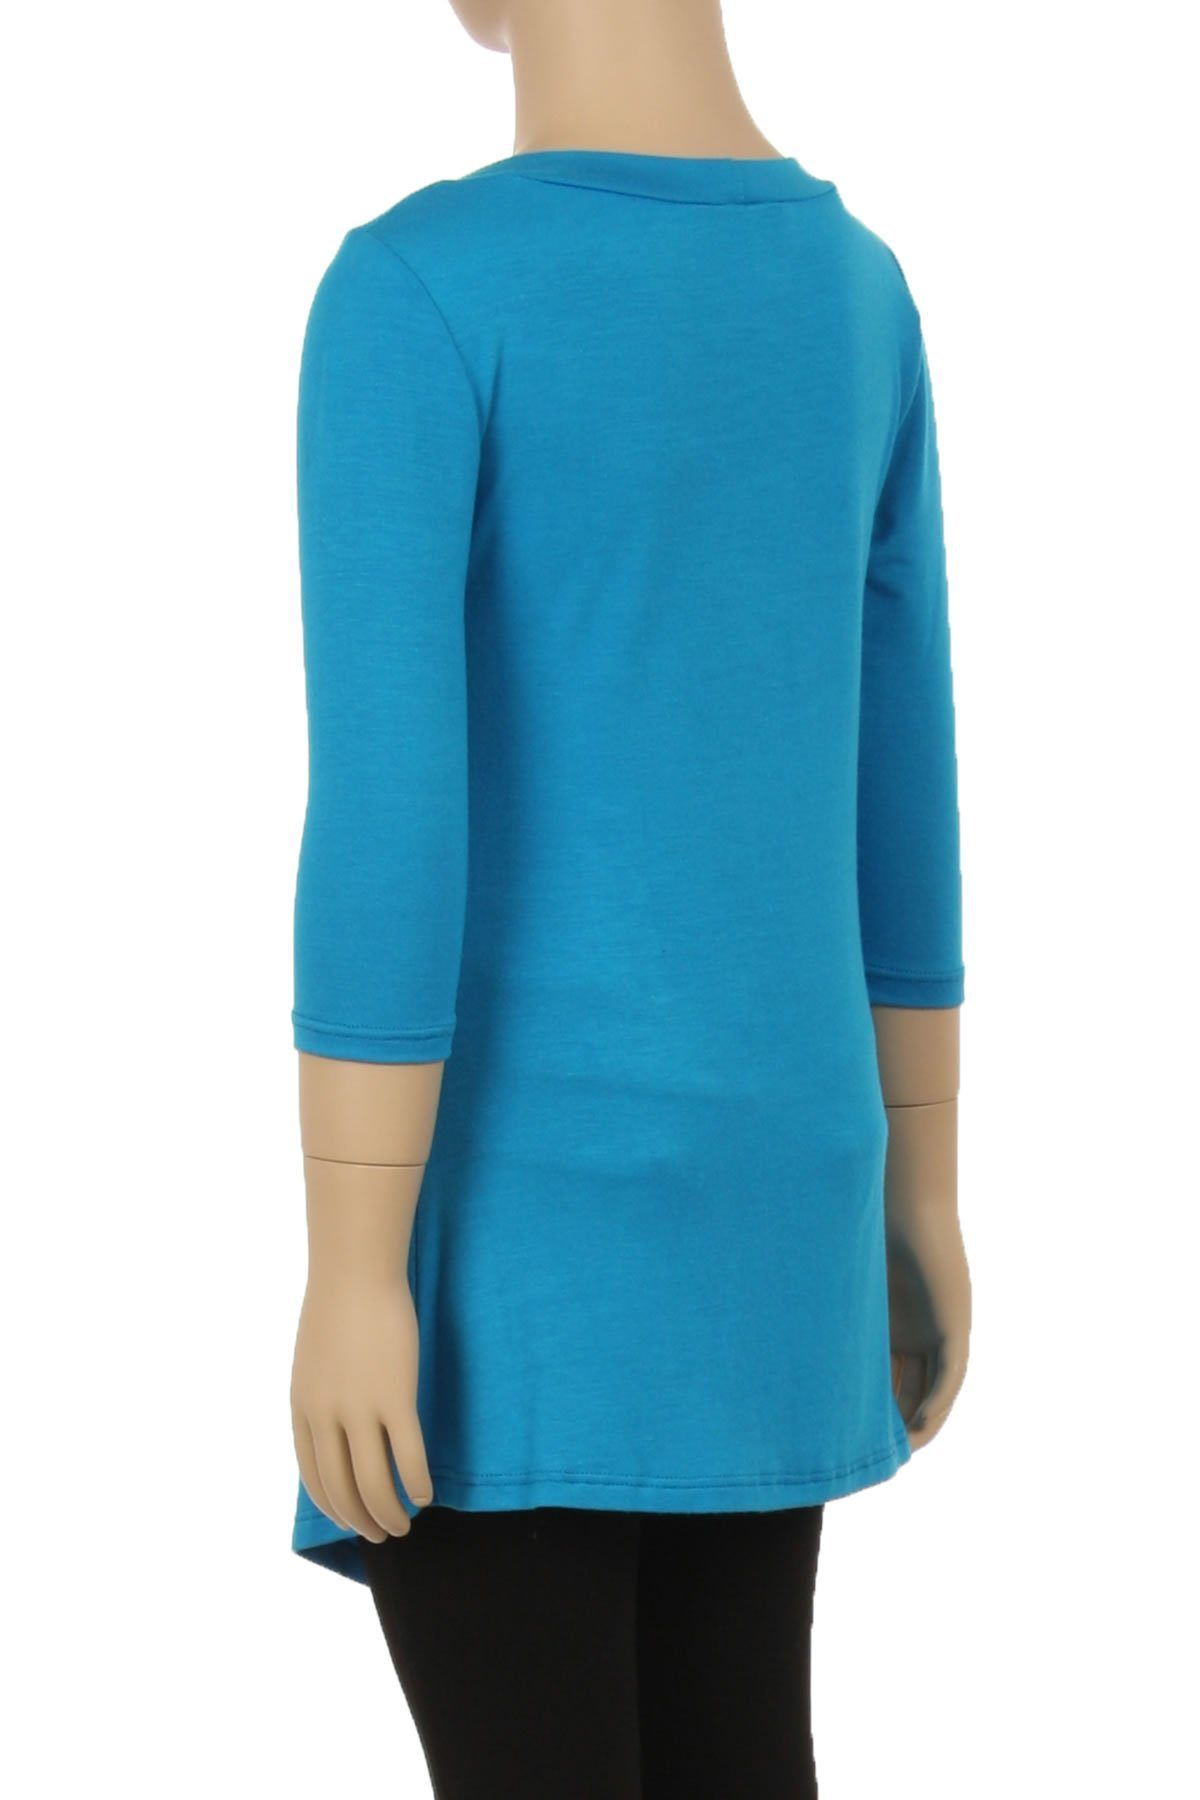 Girls Solid Teal Blue Dress Asymmetric 3/4 Sleeve Tunic Top Tops MomMe and More